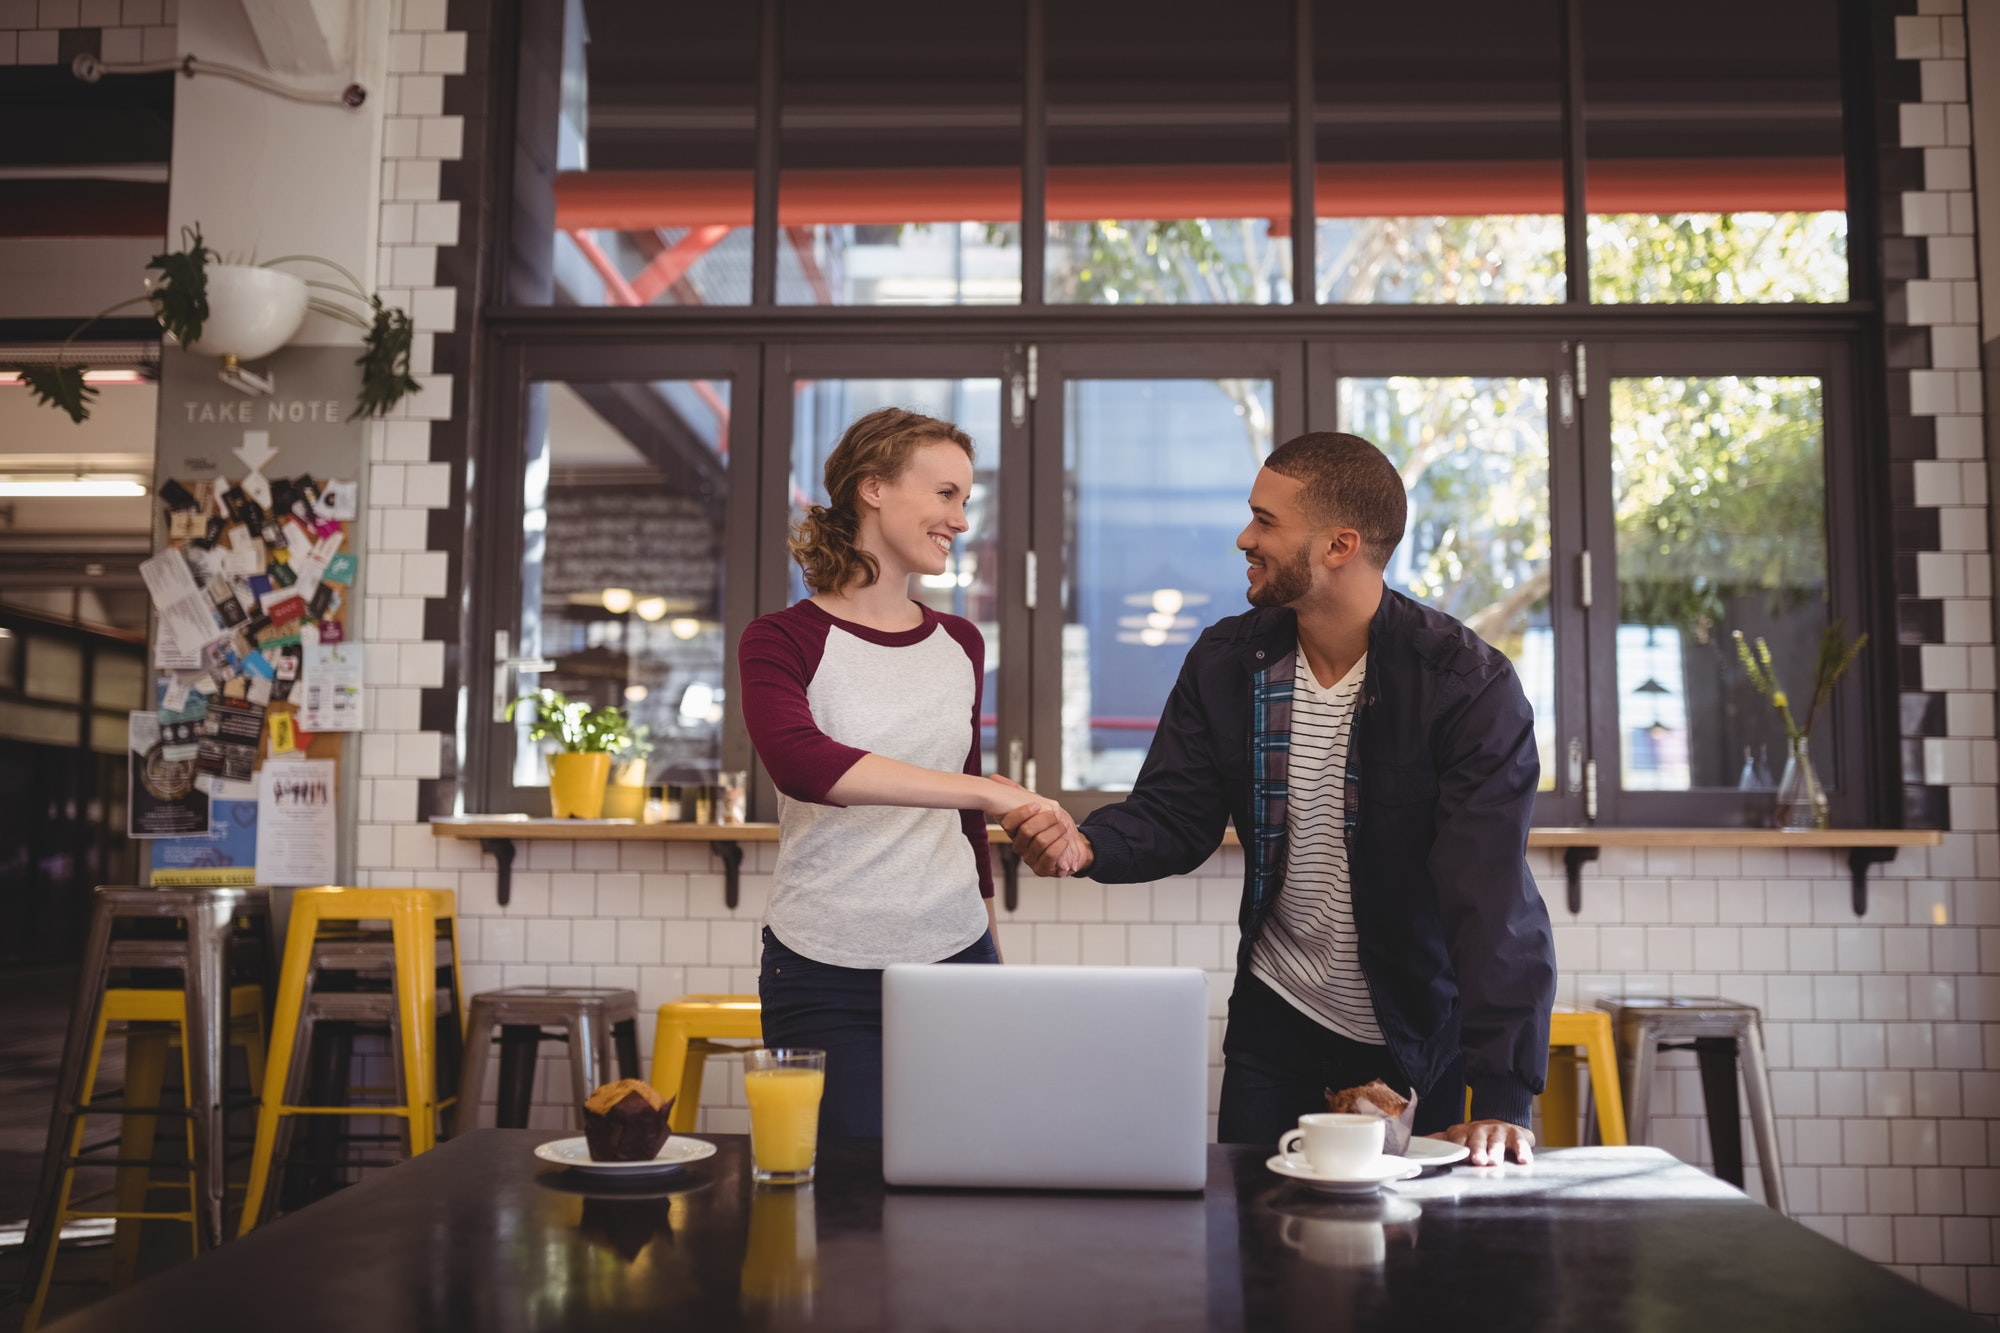 Smiling young man and woman shaking hands at coffee shop